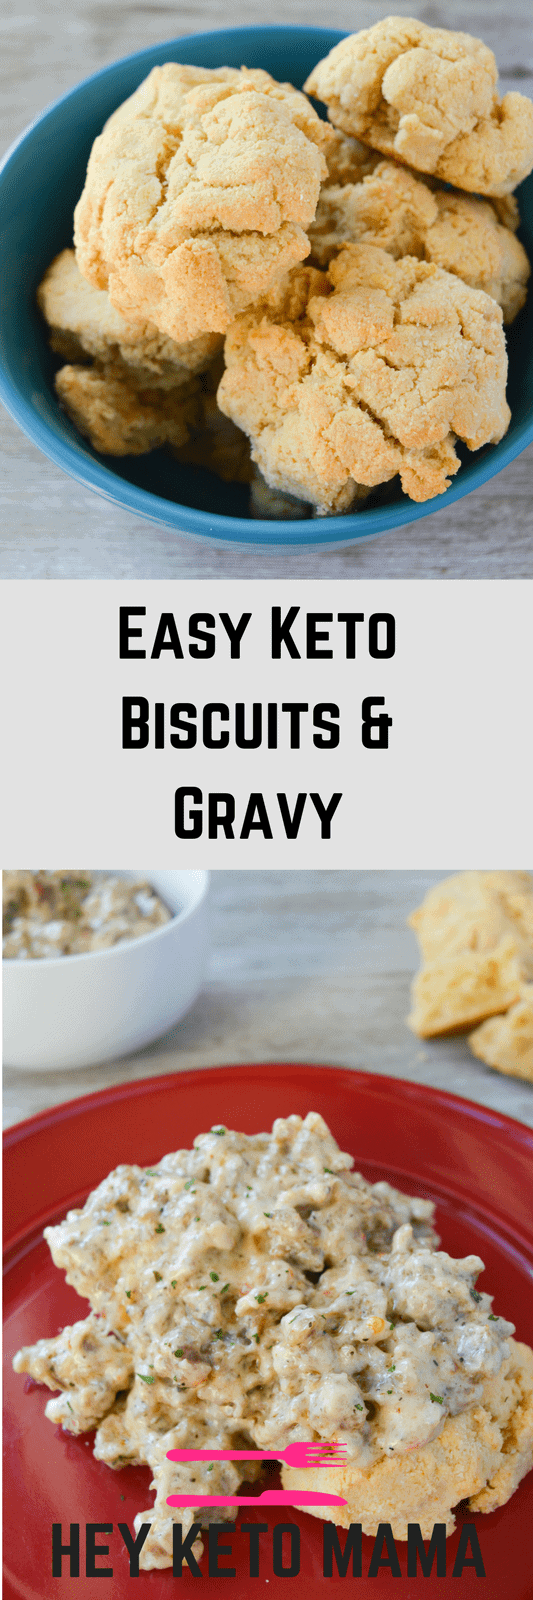 Get ready to experience ketogenic breakfast bliss. This Easy Keto Biscuits and Gravy recipe is an amazing way to start your day with a southern feel!